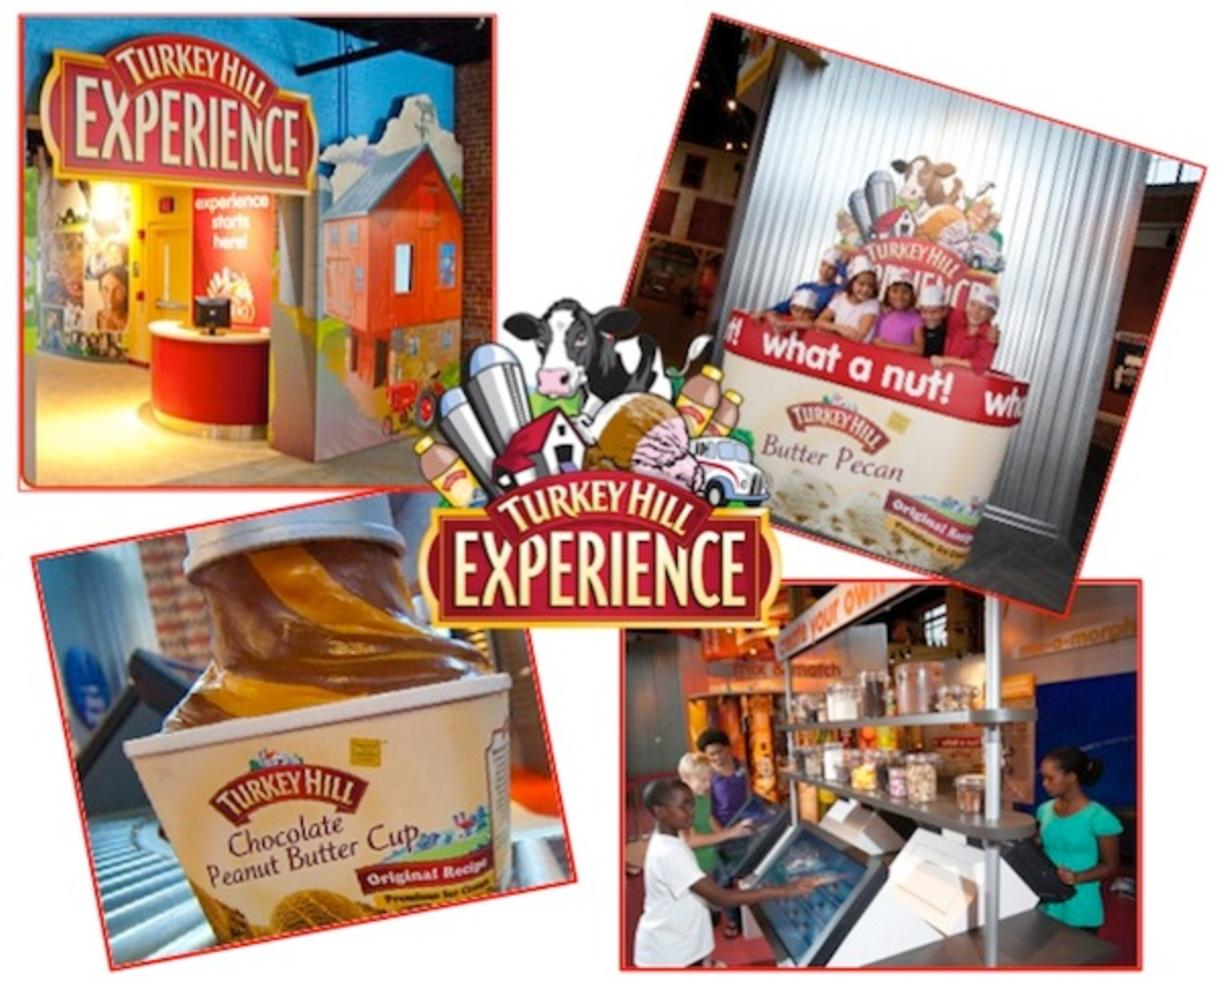 $6 for Turkey Hill Experience Admission - ICE CREAM!! (40% off)